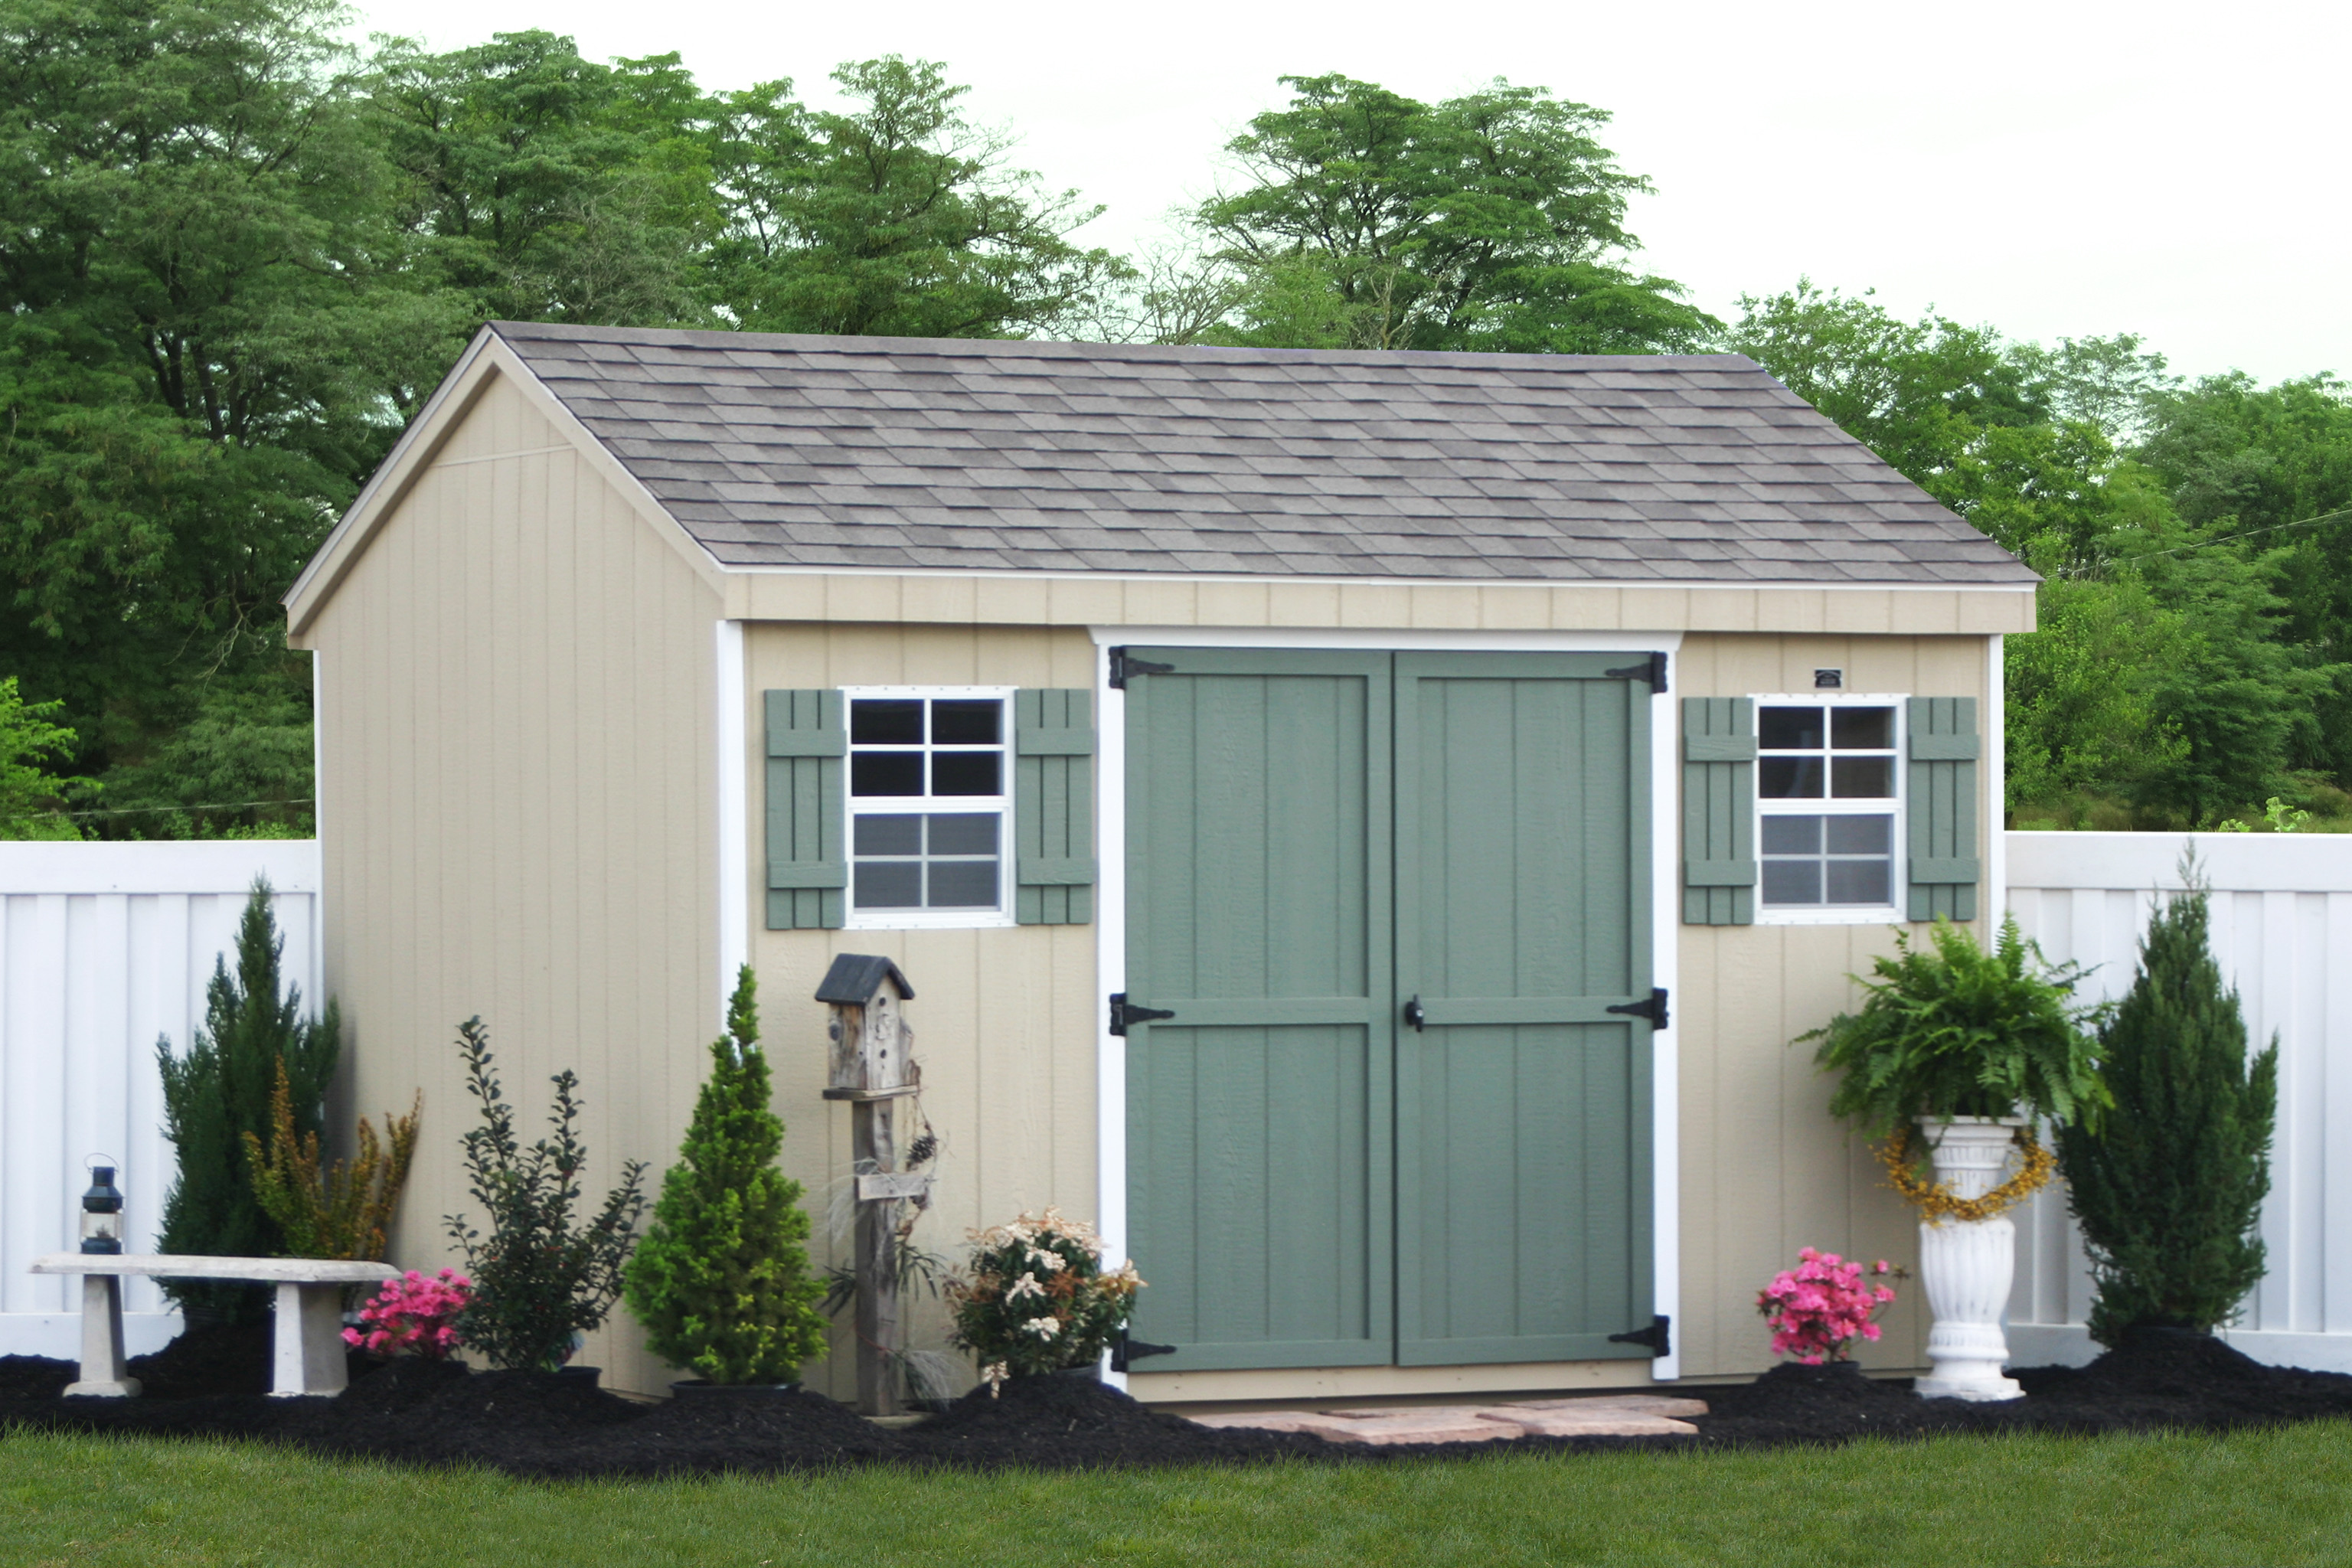 DIY Storage Shed Kits  Buy DIY Storage Shed Kits or Built on Site Kits